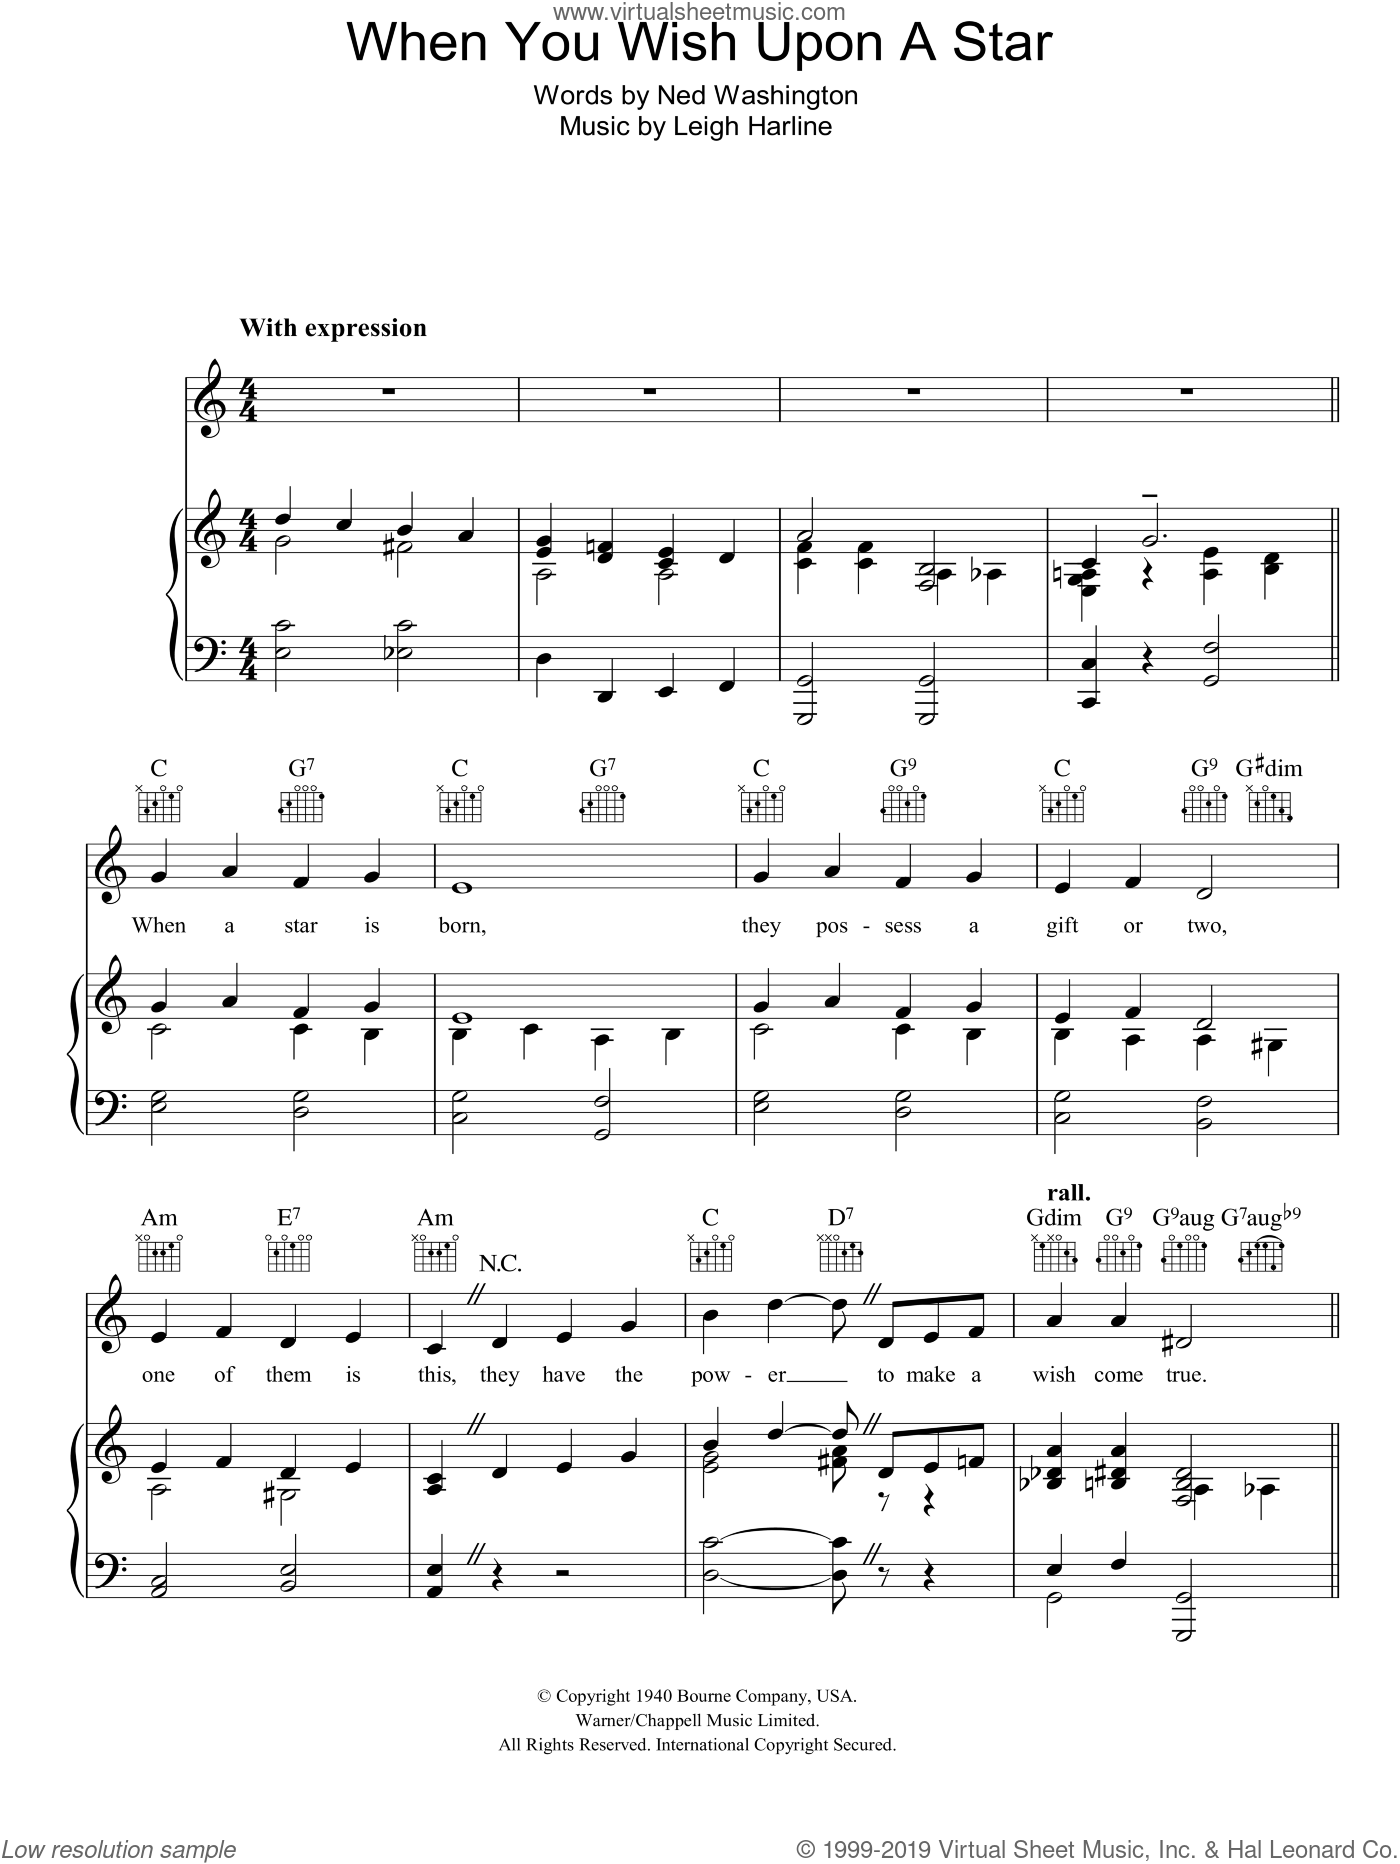 When You Wish Upon A Star (from Disney's Pinocchio) sheet music for voice, piano or guitar by Cliff Edwards, Leigh Harline and Ned Washington, intermediate skill level